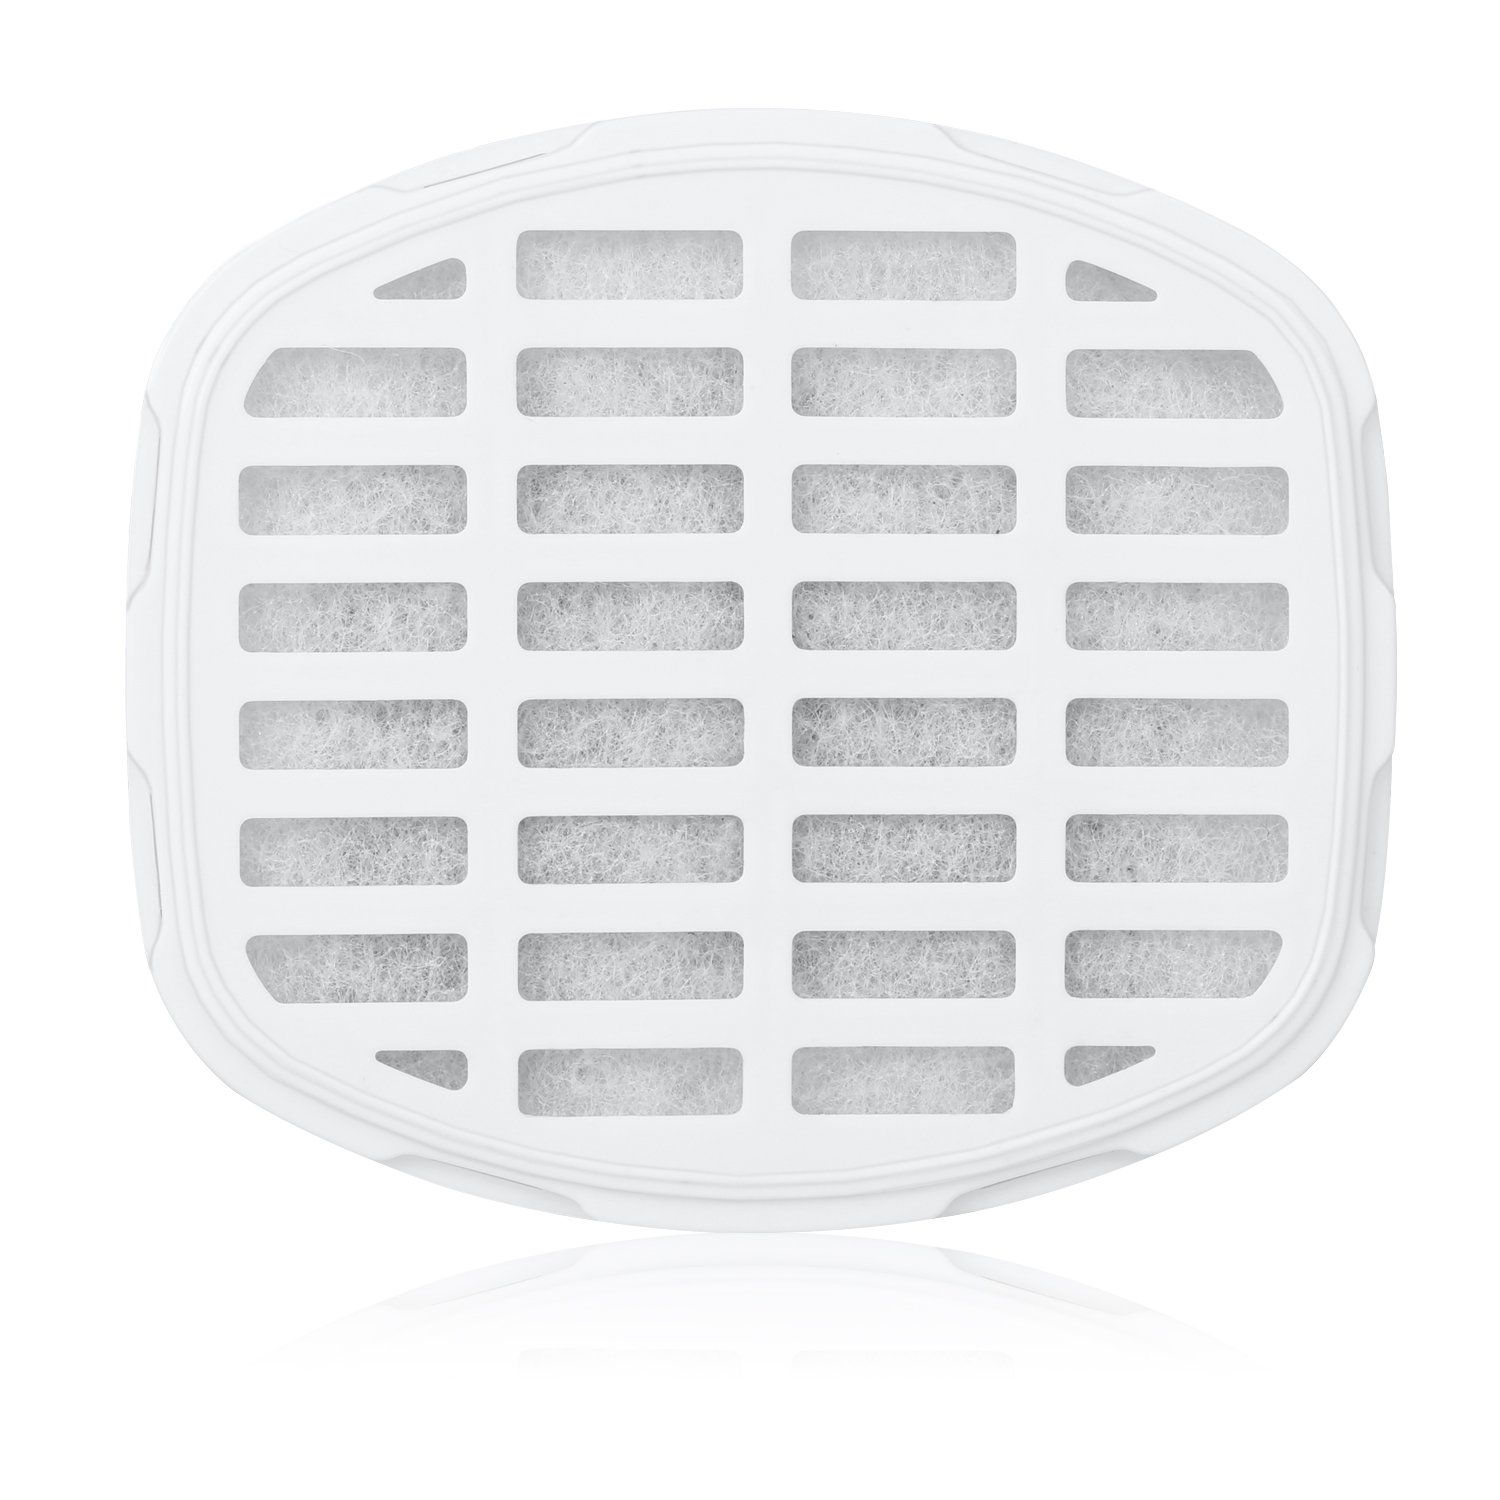 amzdeal Replacement Water Filter for Cat Mate and Dog